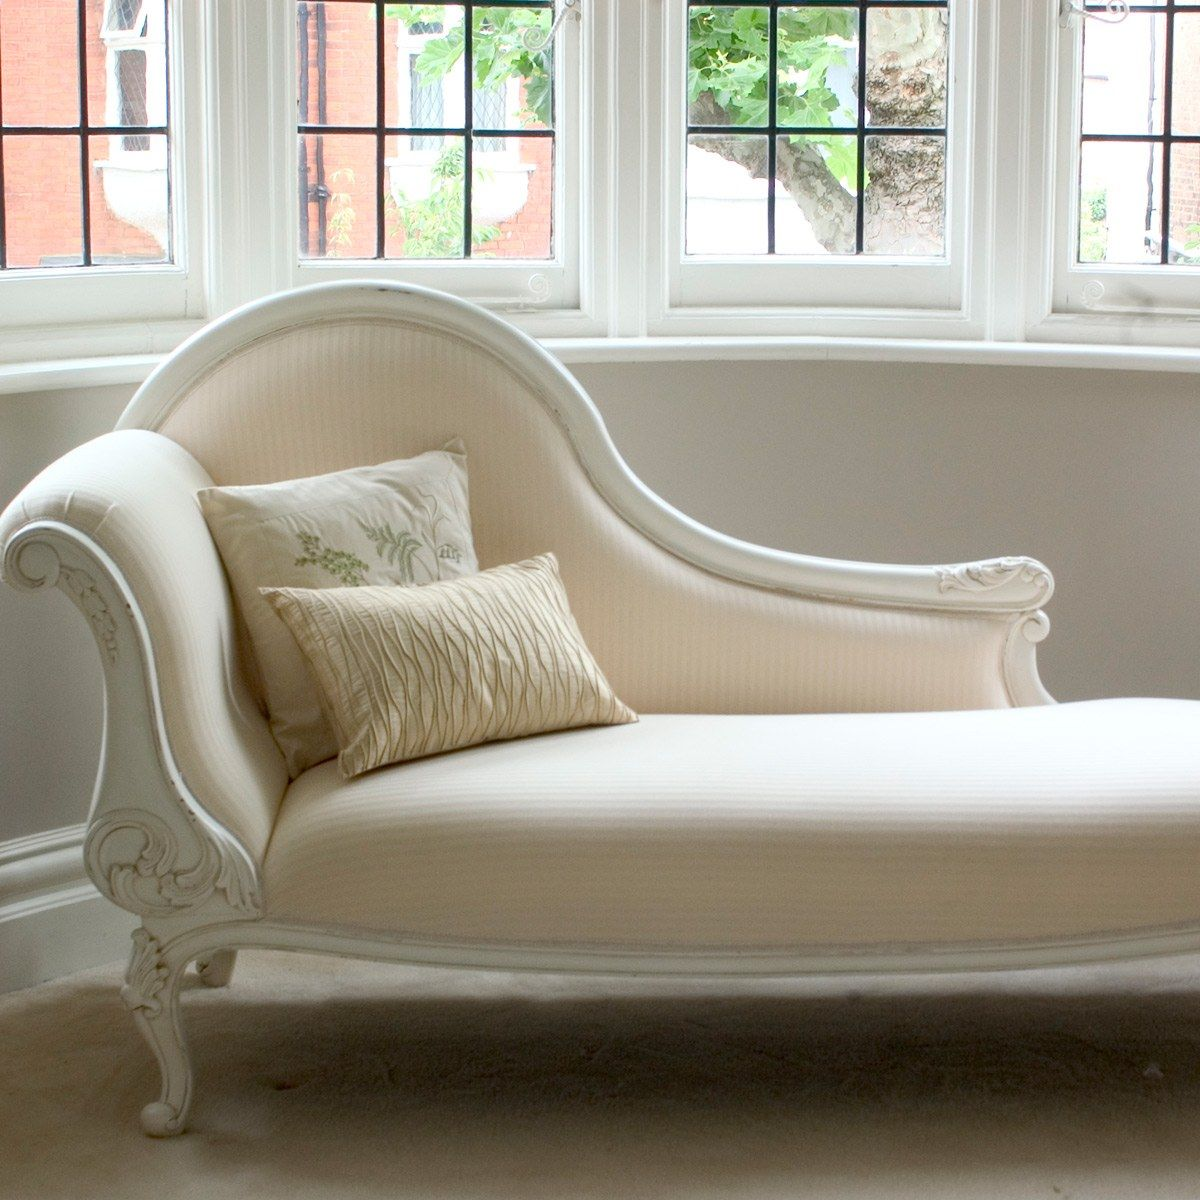 Classical White Chaise Longue Sweetpea Willow Lounge Chair Bedroom White Chaise Modern Chaise Lounge Chairs